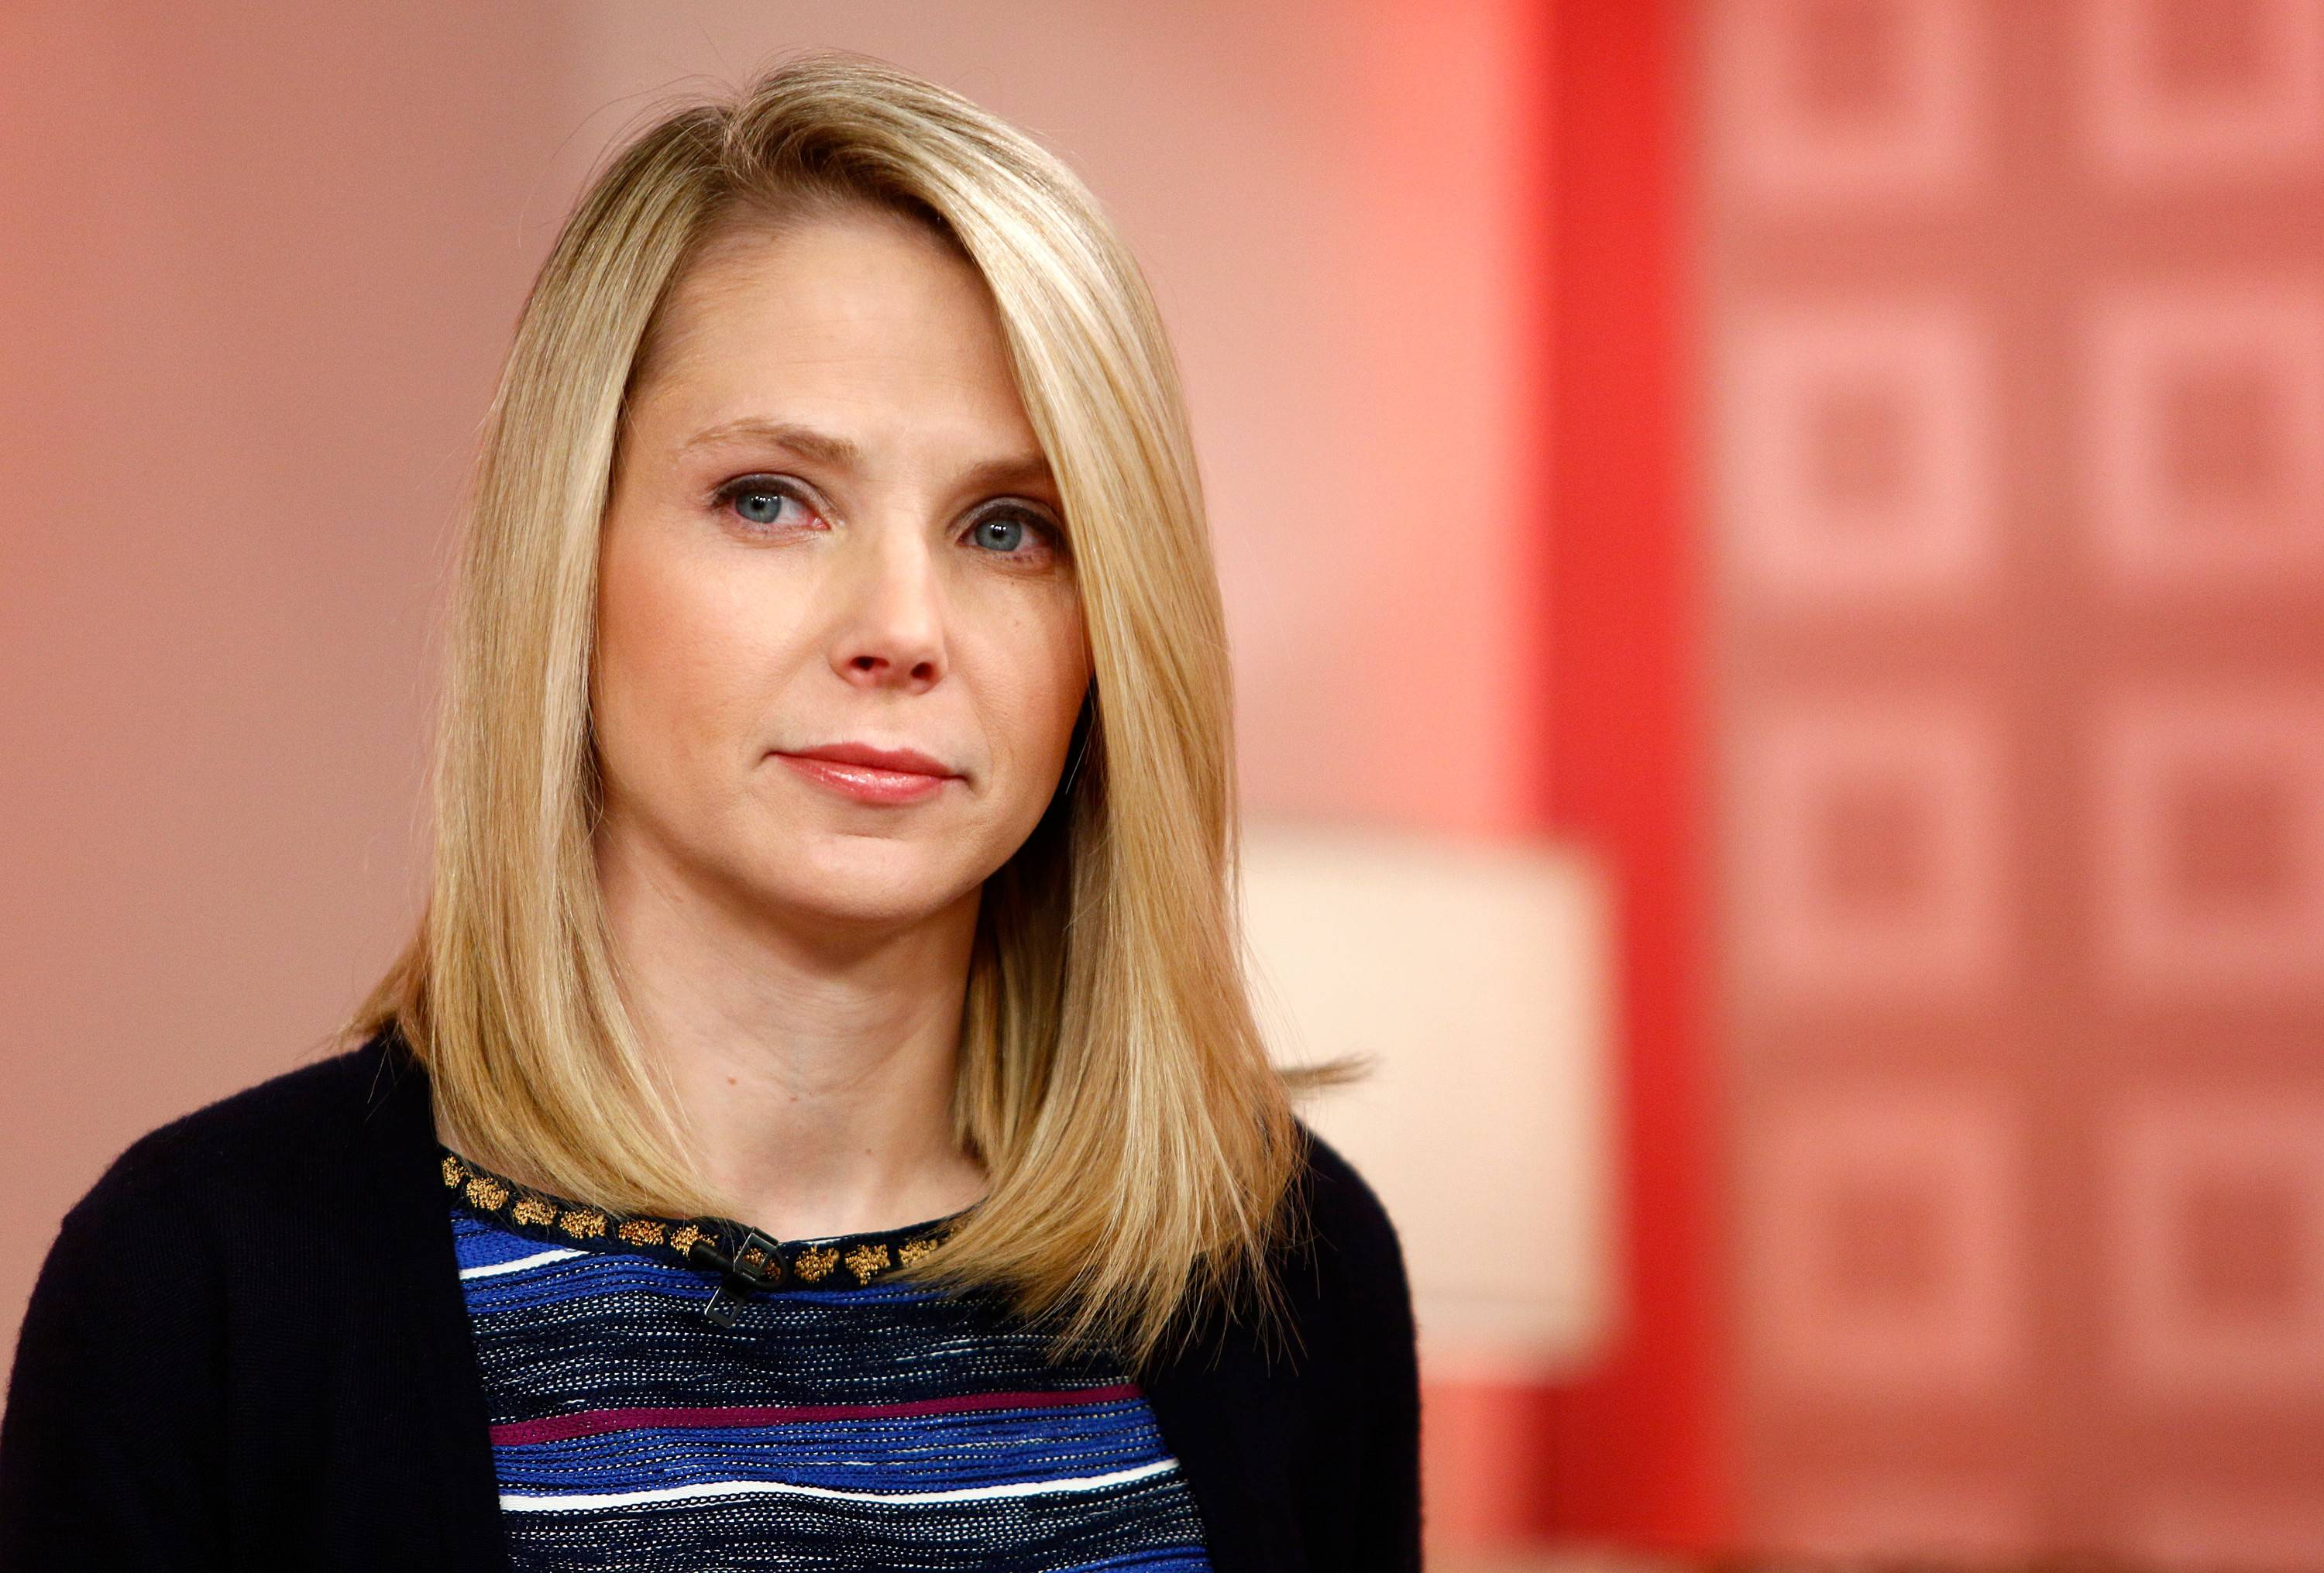 "Some will say that Yahoo's embattled CEO Marissa Mayer, like other women before her in technology, was dealt a tough hand in the first place, accepting a particularly precarious leadership role often known as the ""glass cliff."" Research has shown that women disproportionately receive opportunities to lead at difficult times, and the tech sector would seem to have a preponderance of examples."